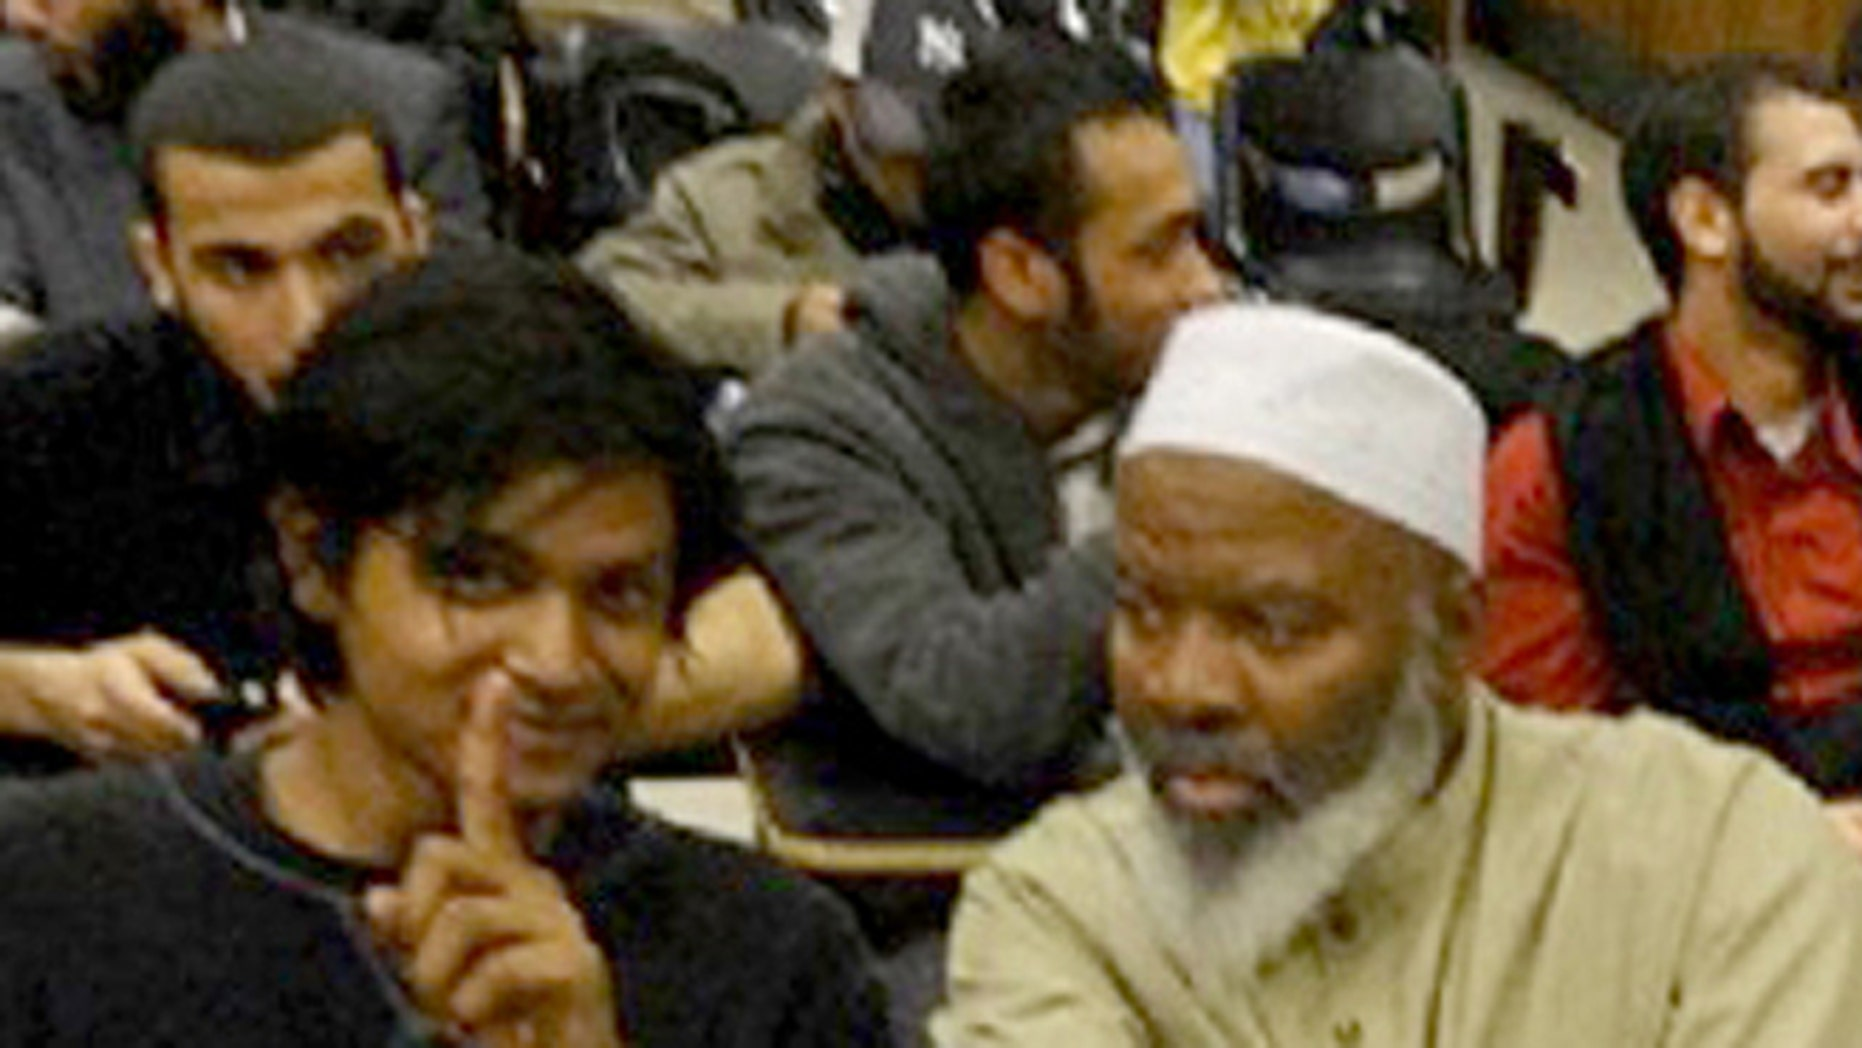 May 3, 2012: This handout photo provided by Jamill Noorata shows Shamiur Rahman, left, sitting with Siraj Wahhaj at John Jay Community College in New York.